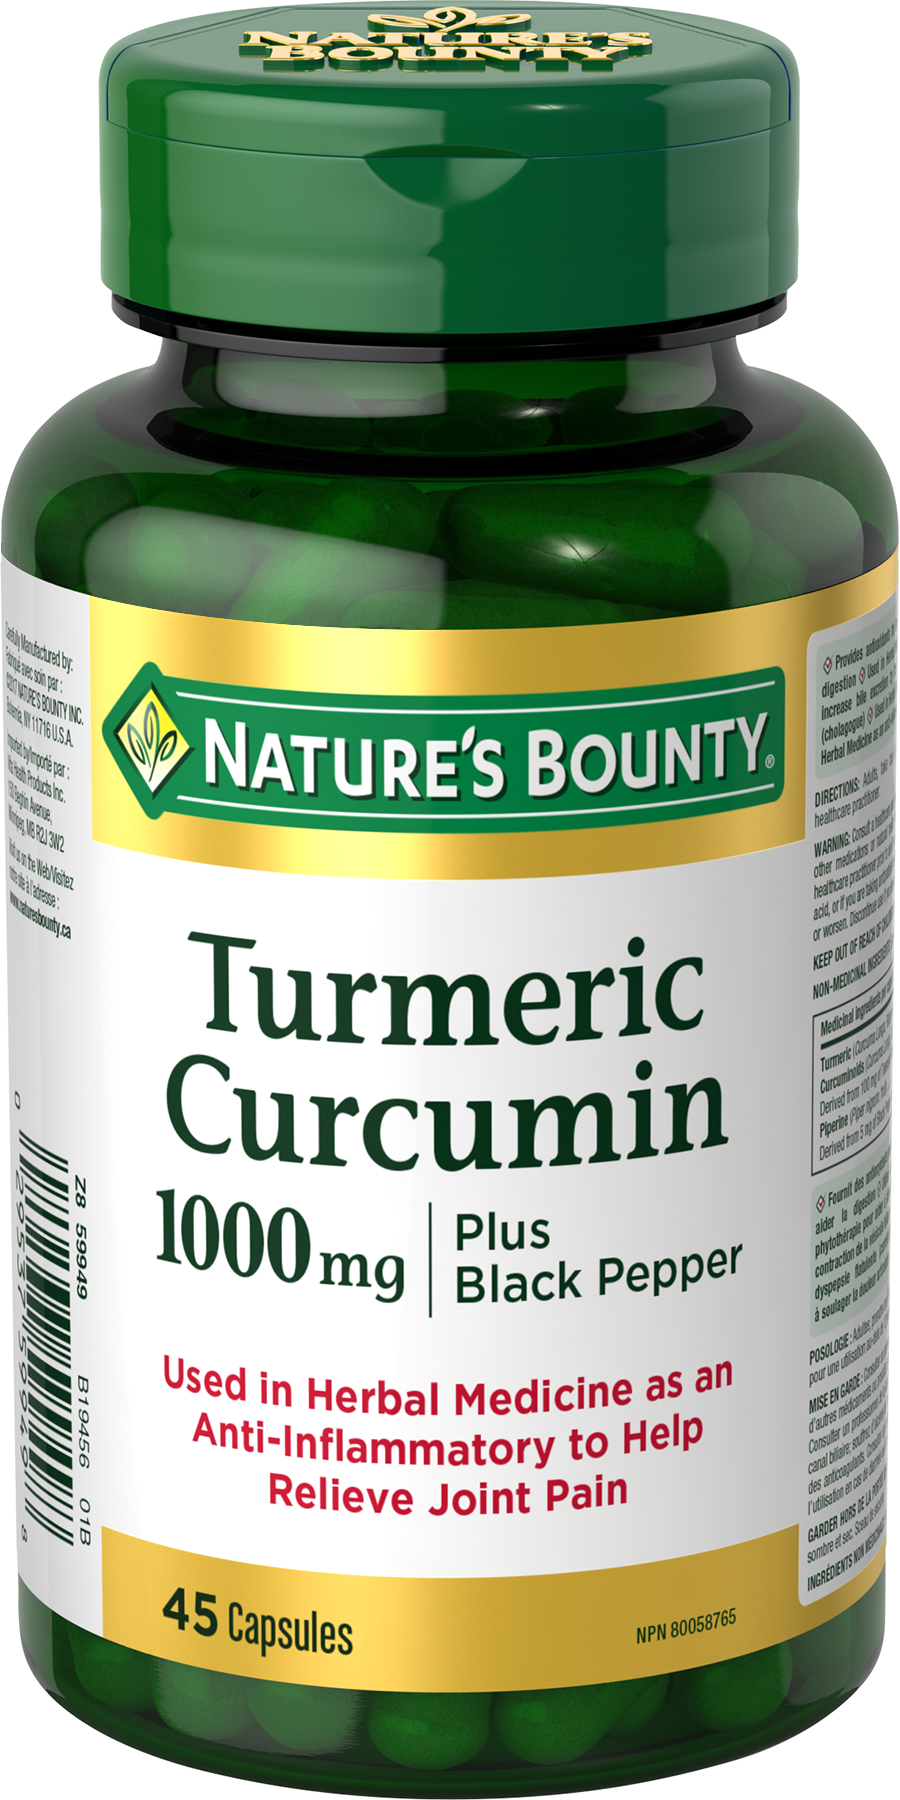 Turmeric Curcumin plus Black Pepper